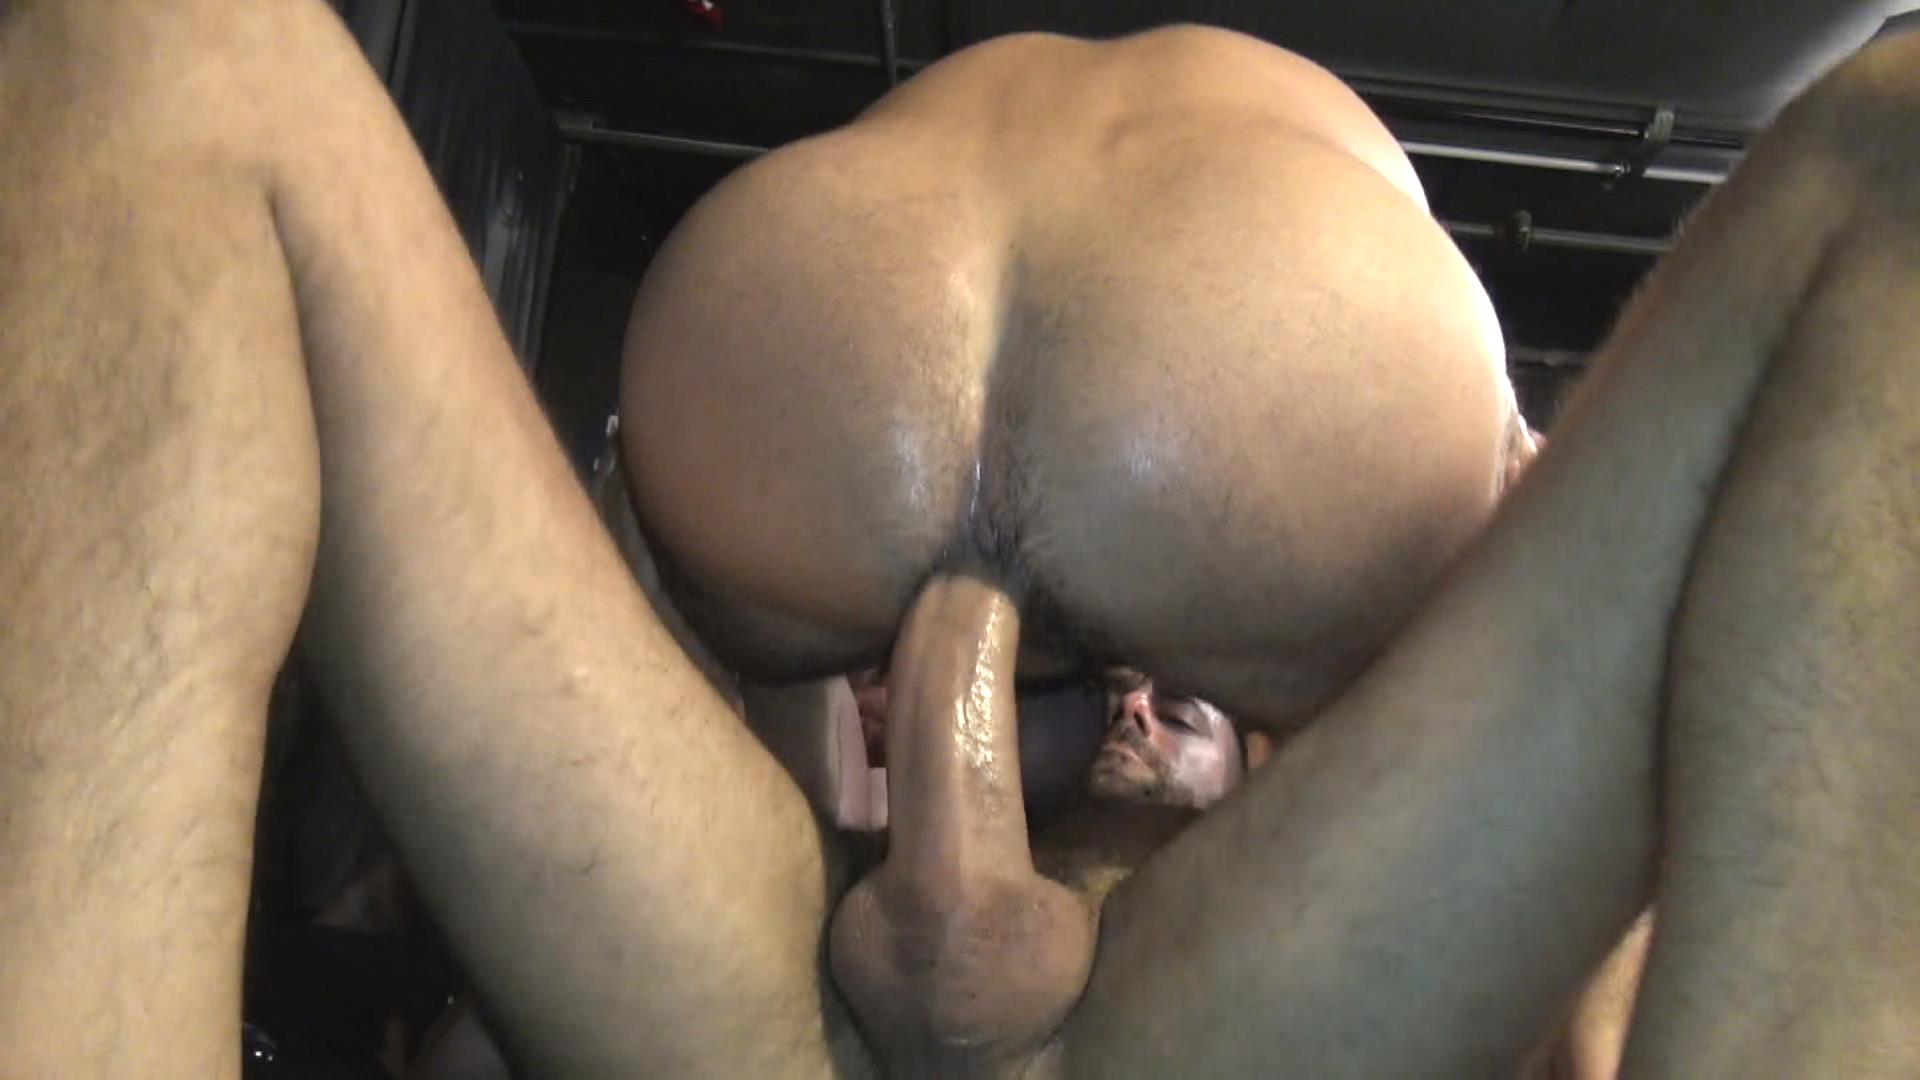 Raw Fuck Club Blue Bailey and Dylan Strokes and Adam Russo and Dean Brody and Jay Brix Bareback Orgy Amateur Gay Porn 5 Adam Russo Getting Double Penetrated At A Bareback Sex Party